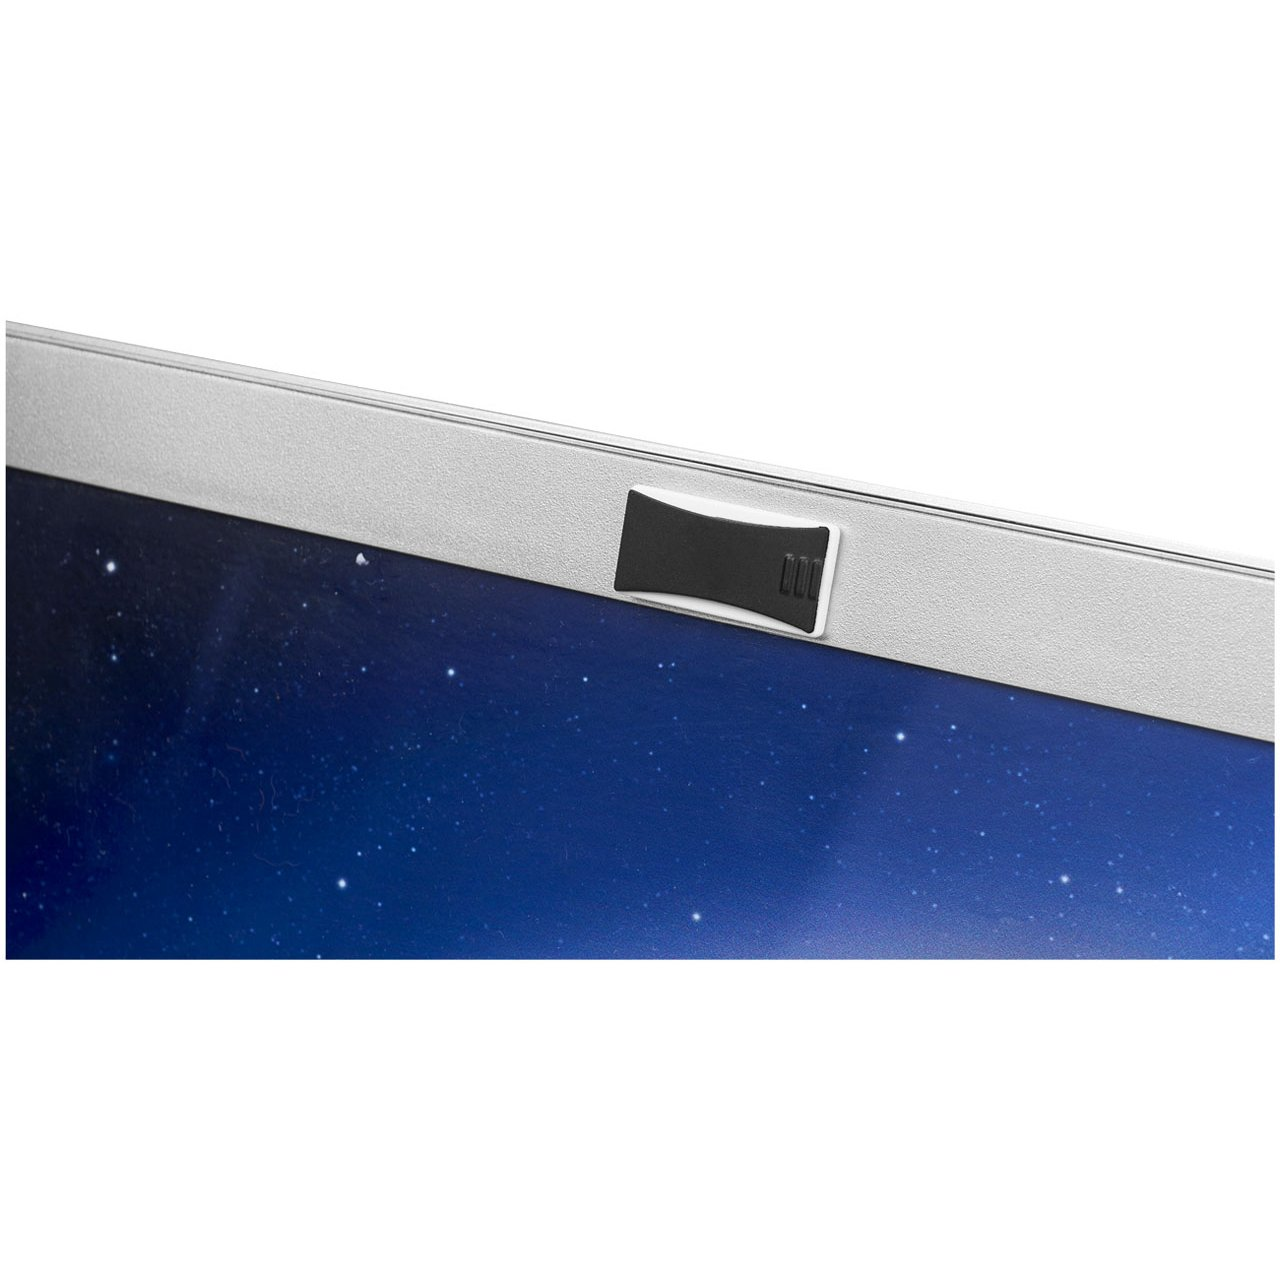 Bullet Shade webcam covers